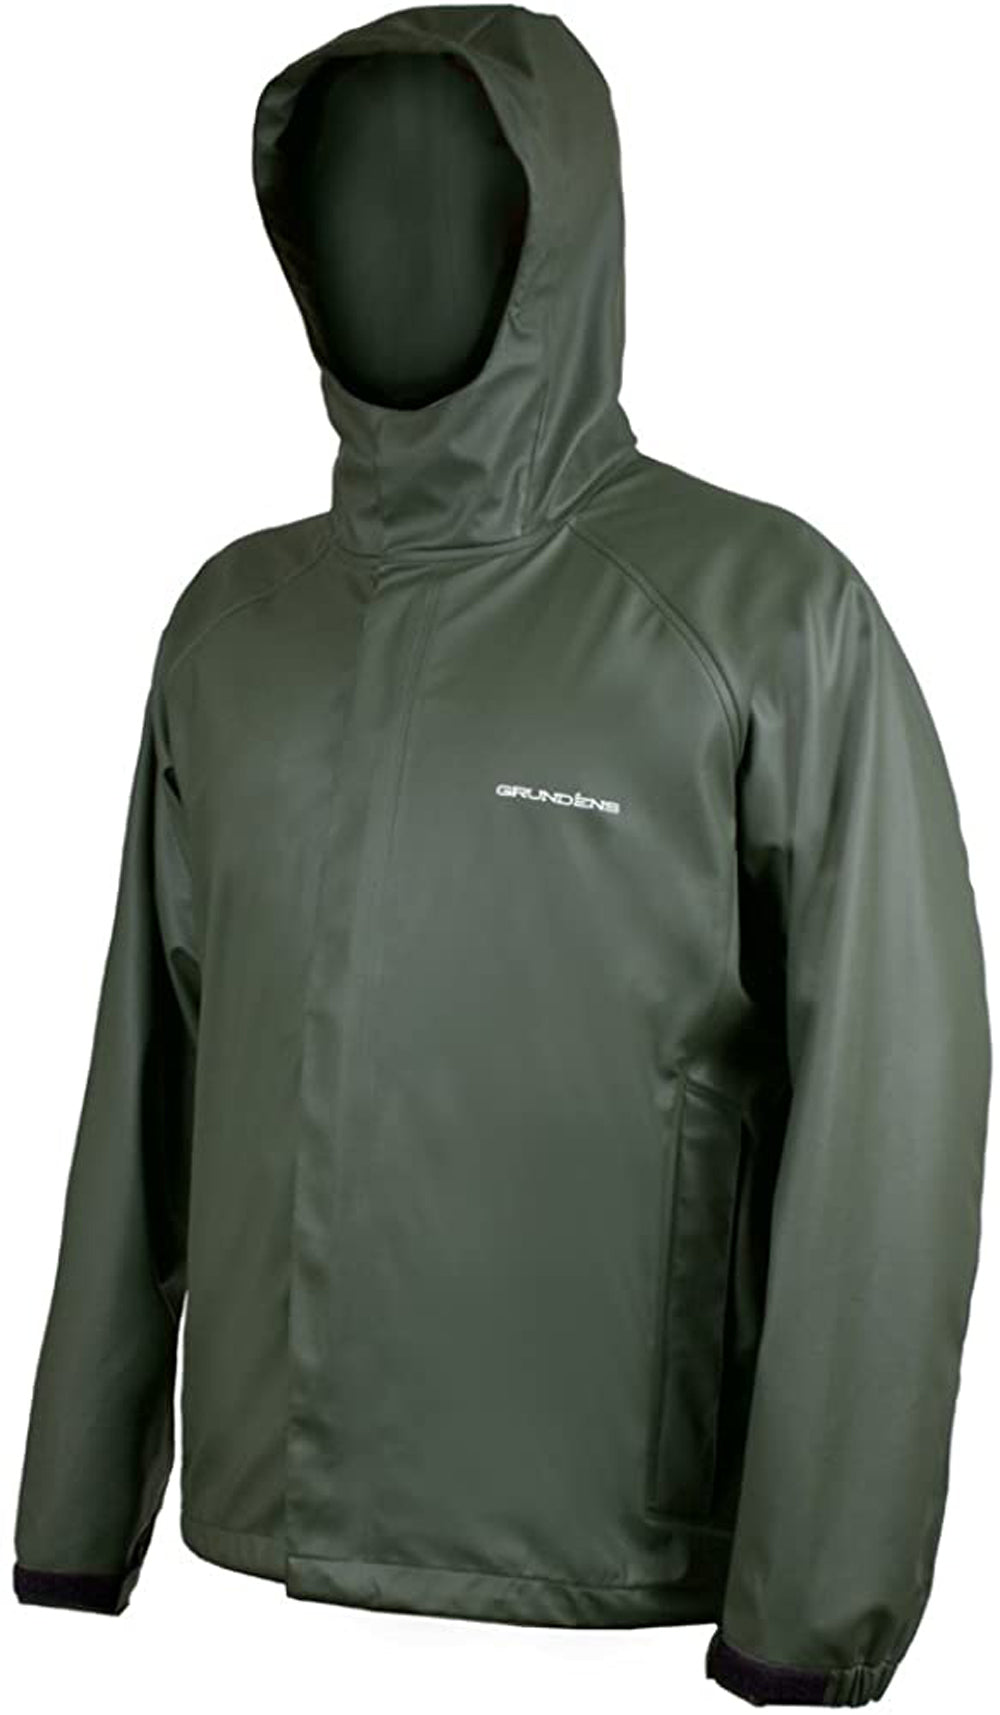 Neptune Jacket in Green color from the front view